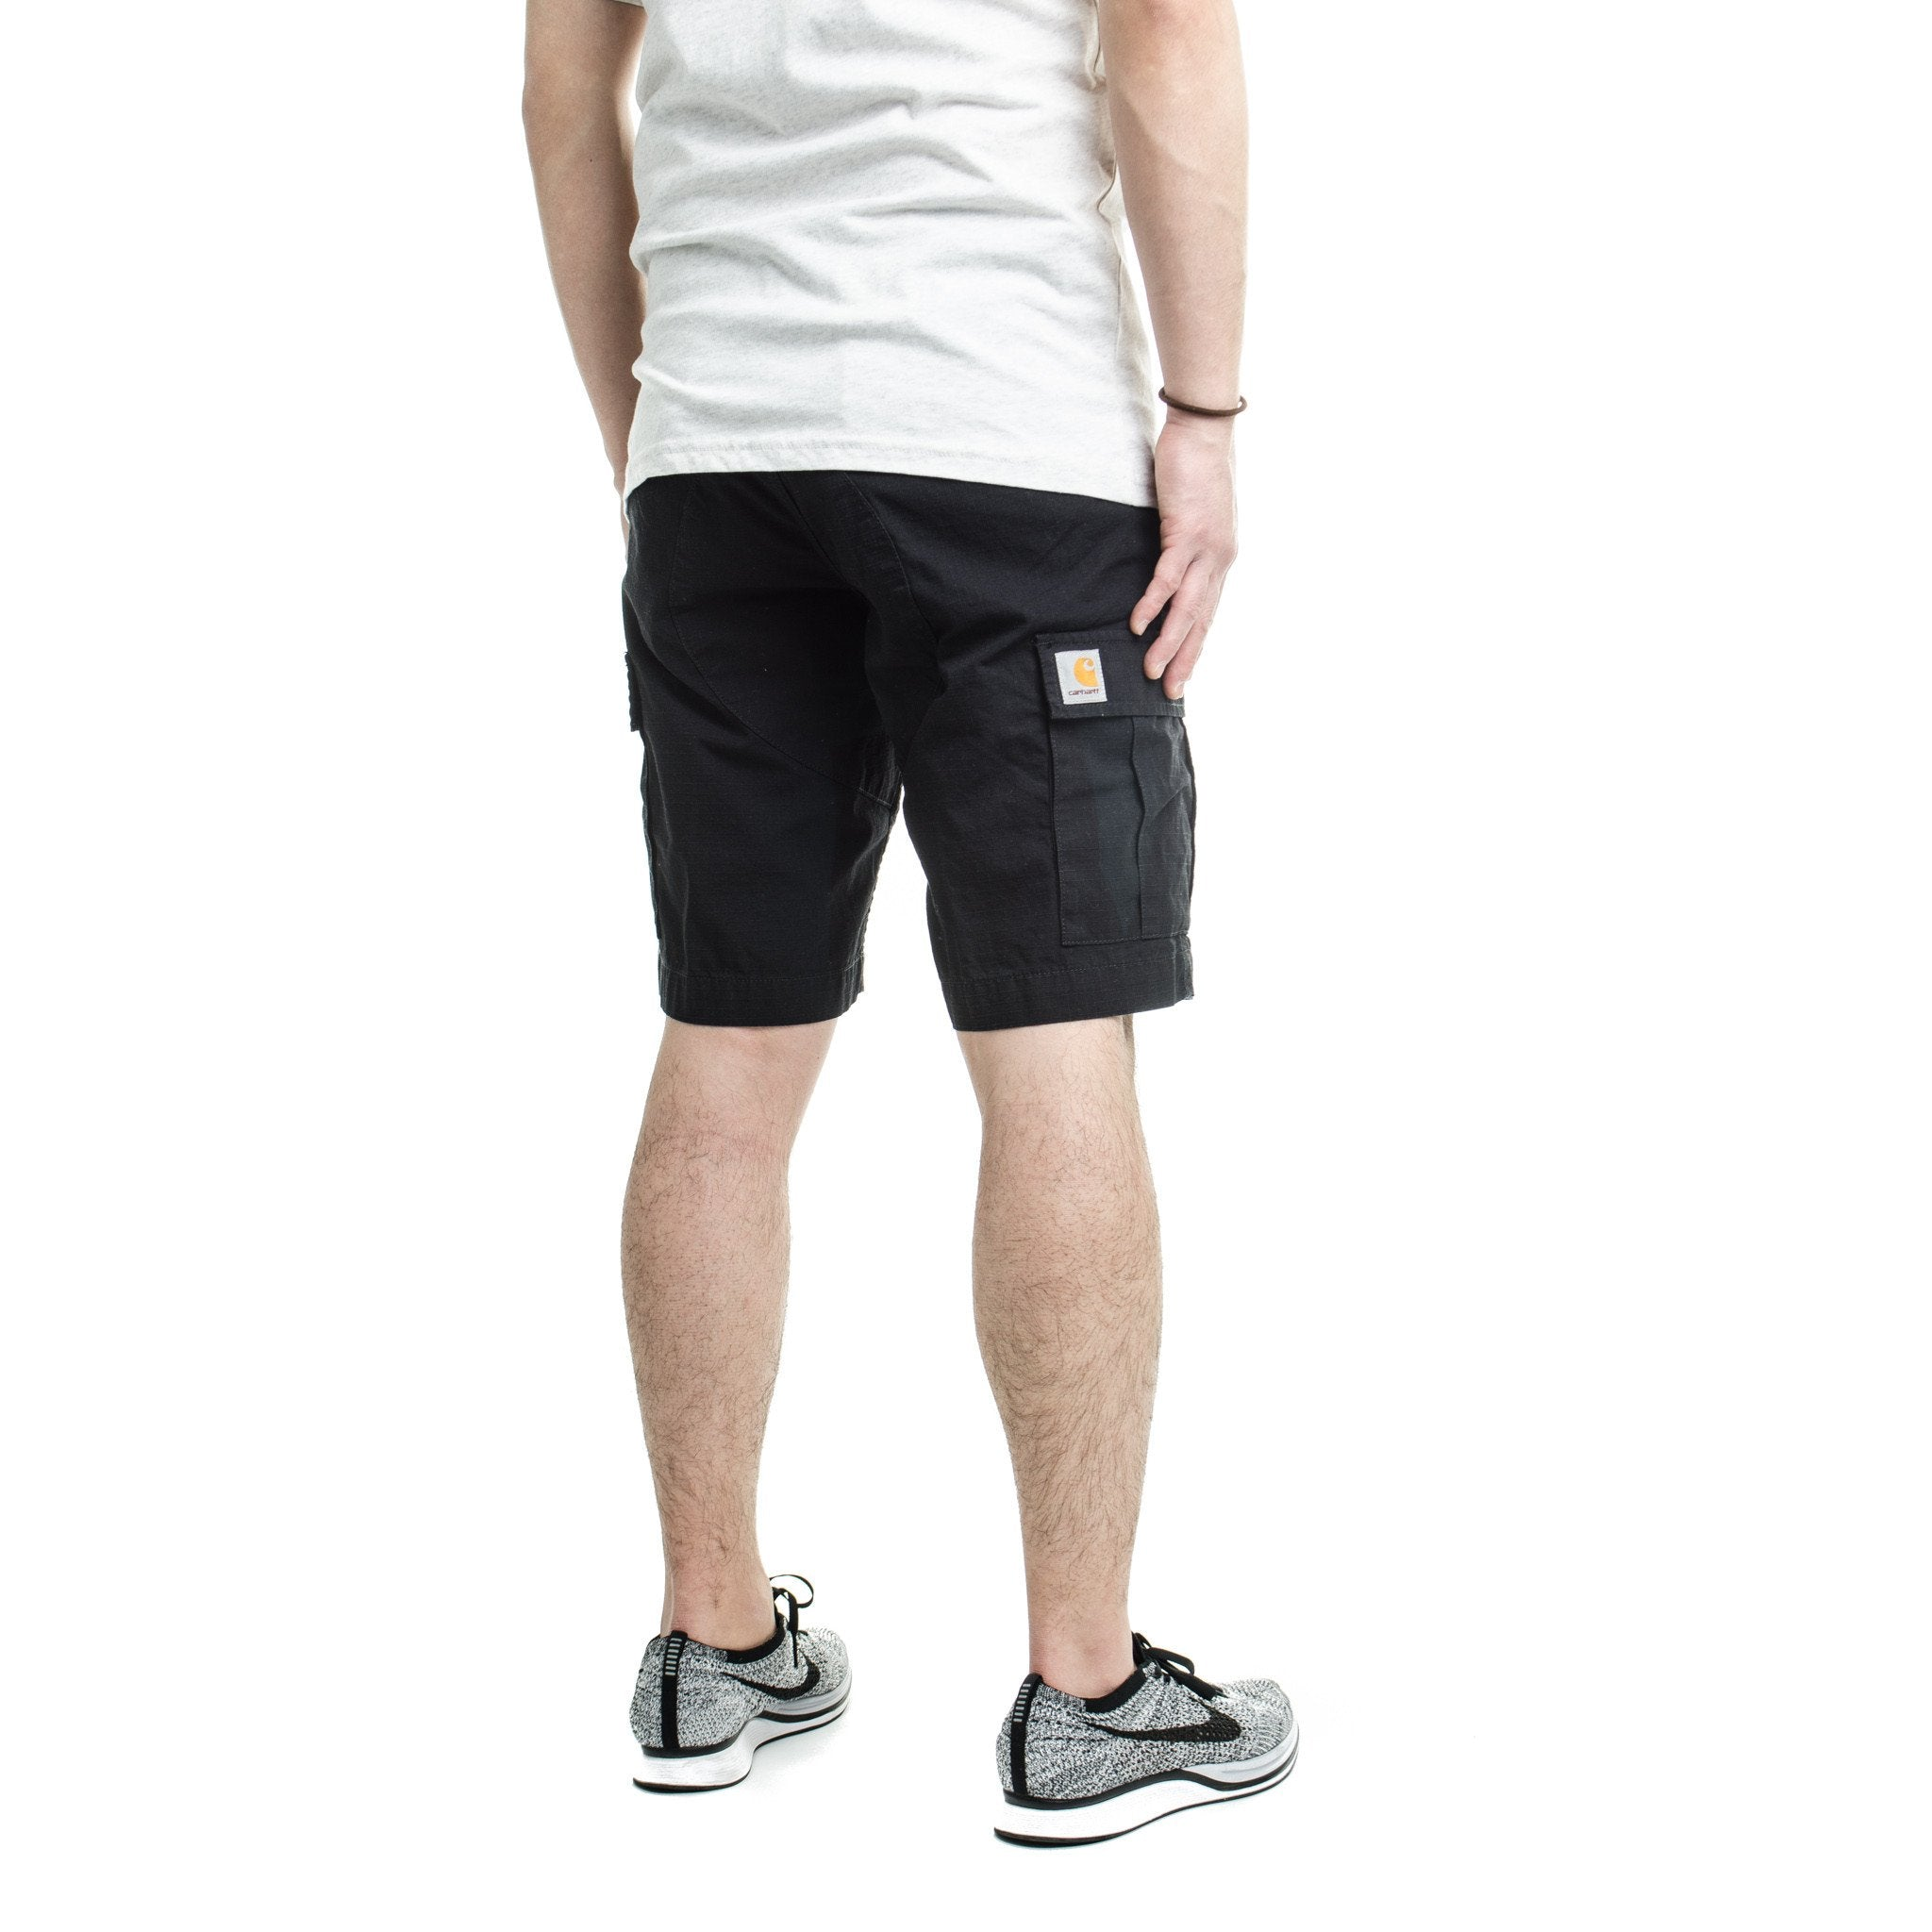 Aviation Short Black 0229